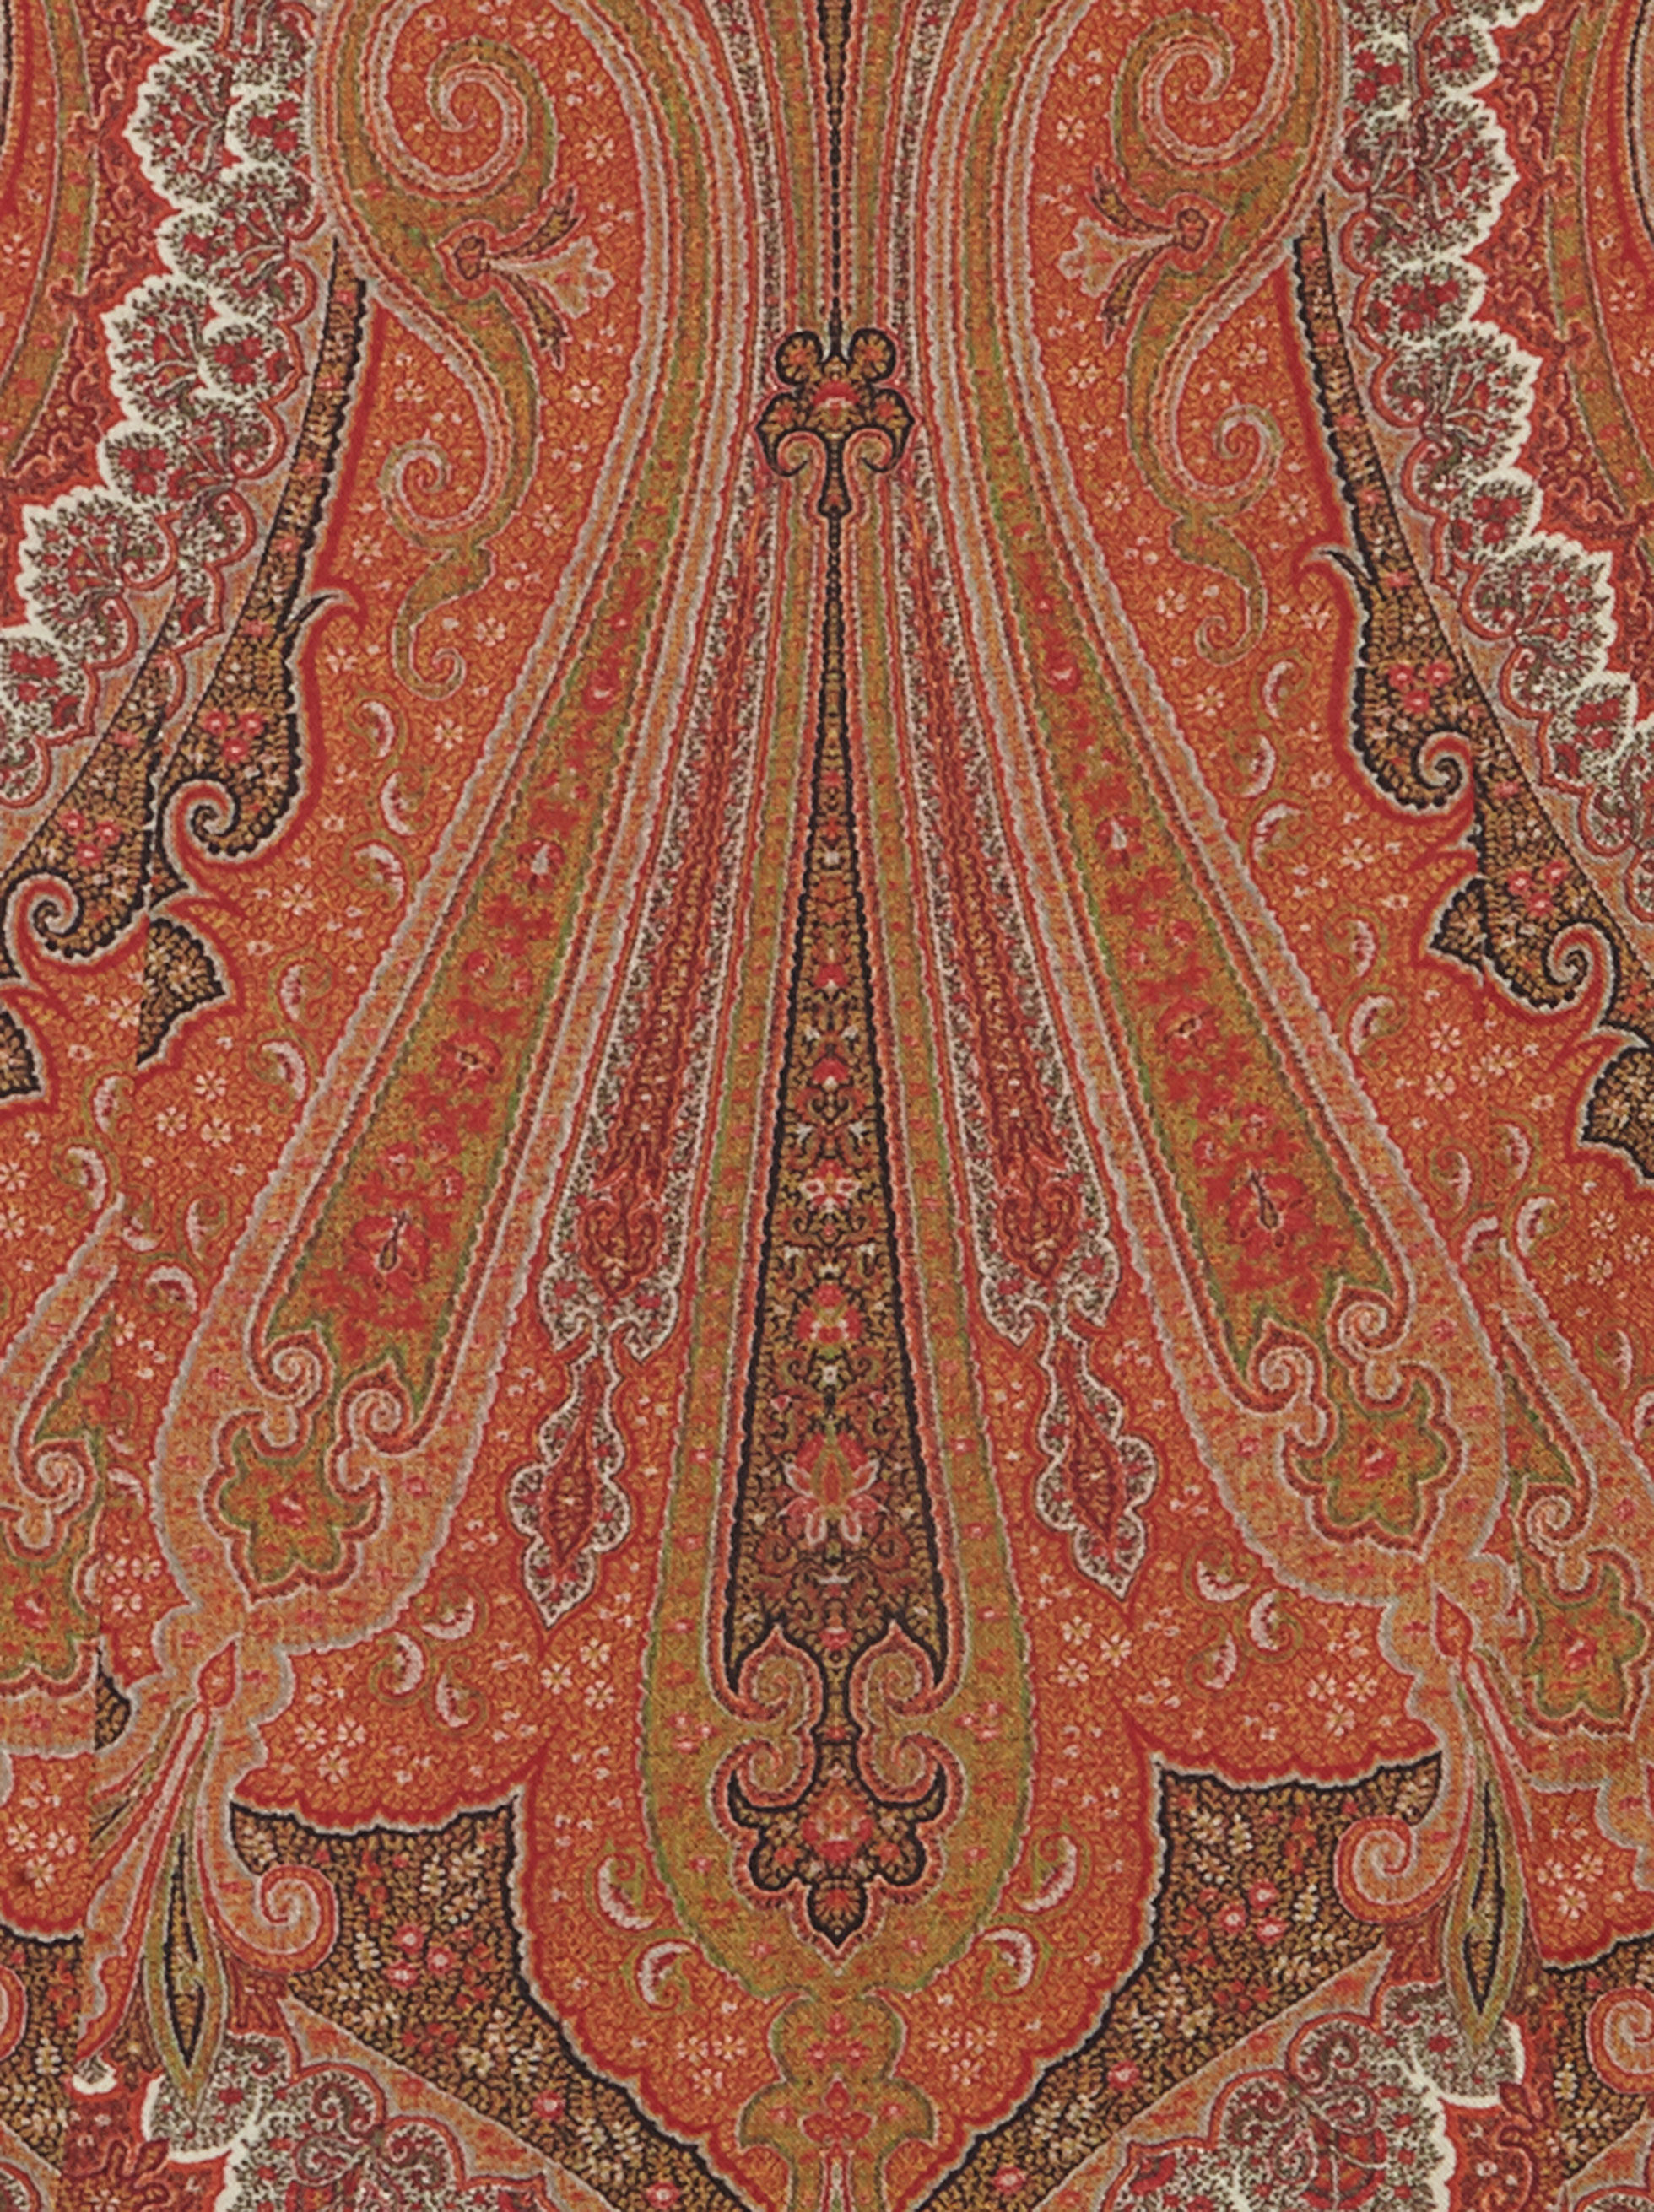 ABITO LUNGO STAMPA PAISLEY